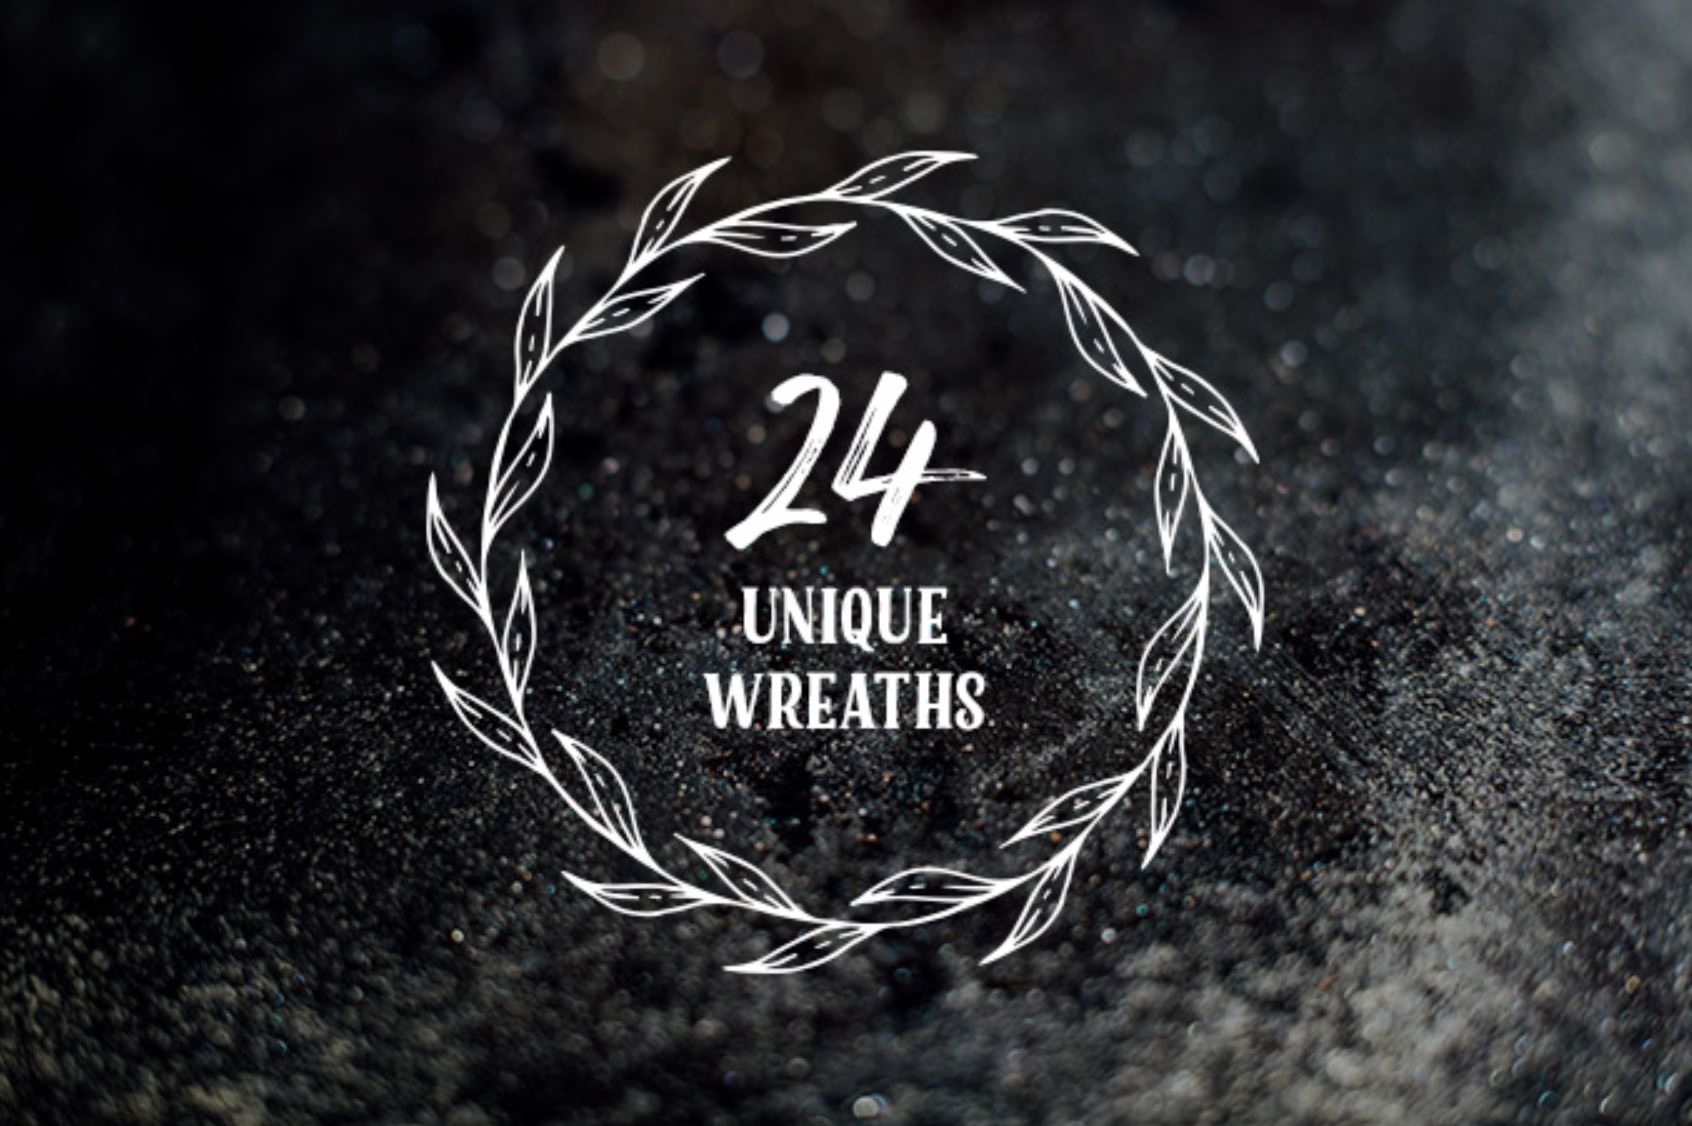 24 unique wreath graphics.